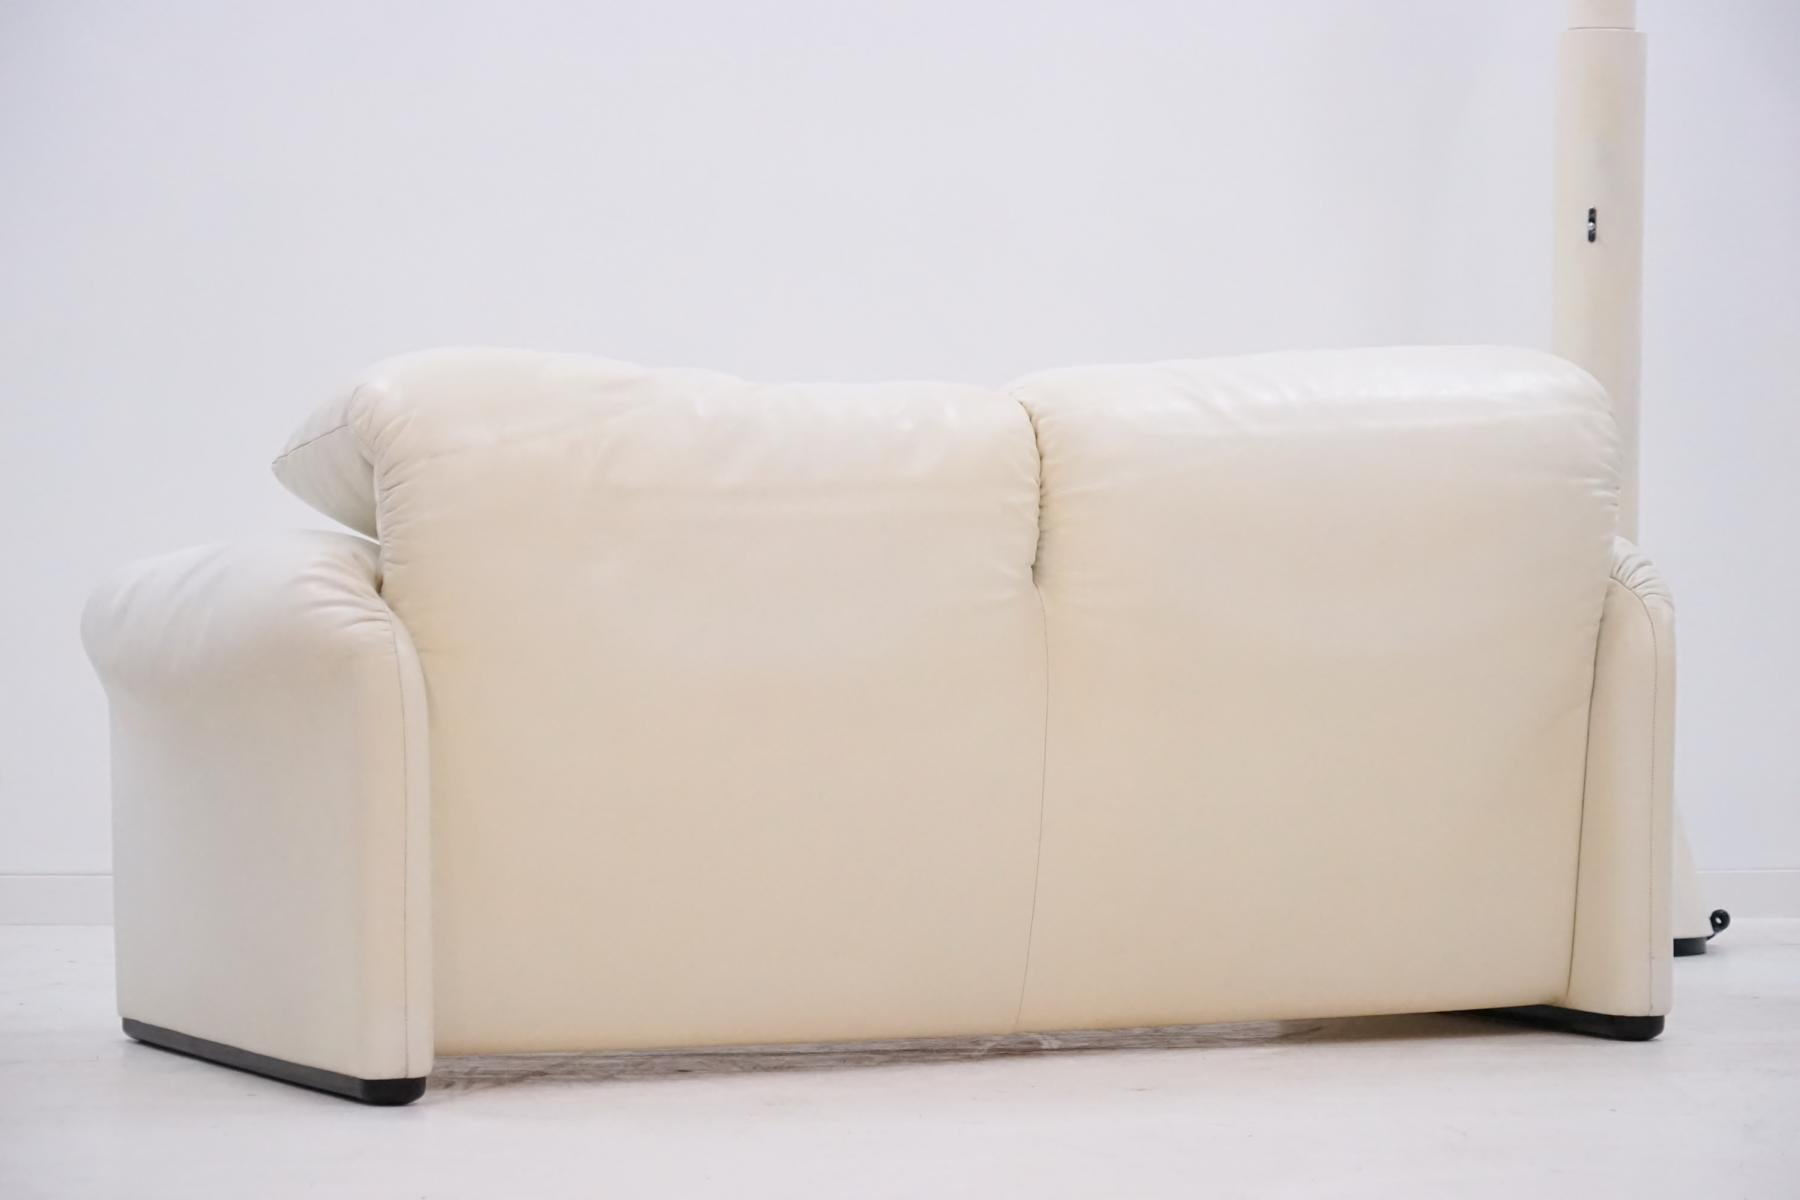 Two Seat Maralunga Cina Vico Magestretti Design Function Canapé Couch Leather At 1stdibs